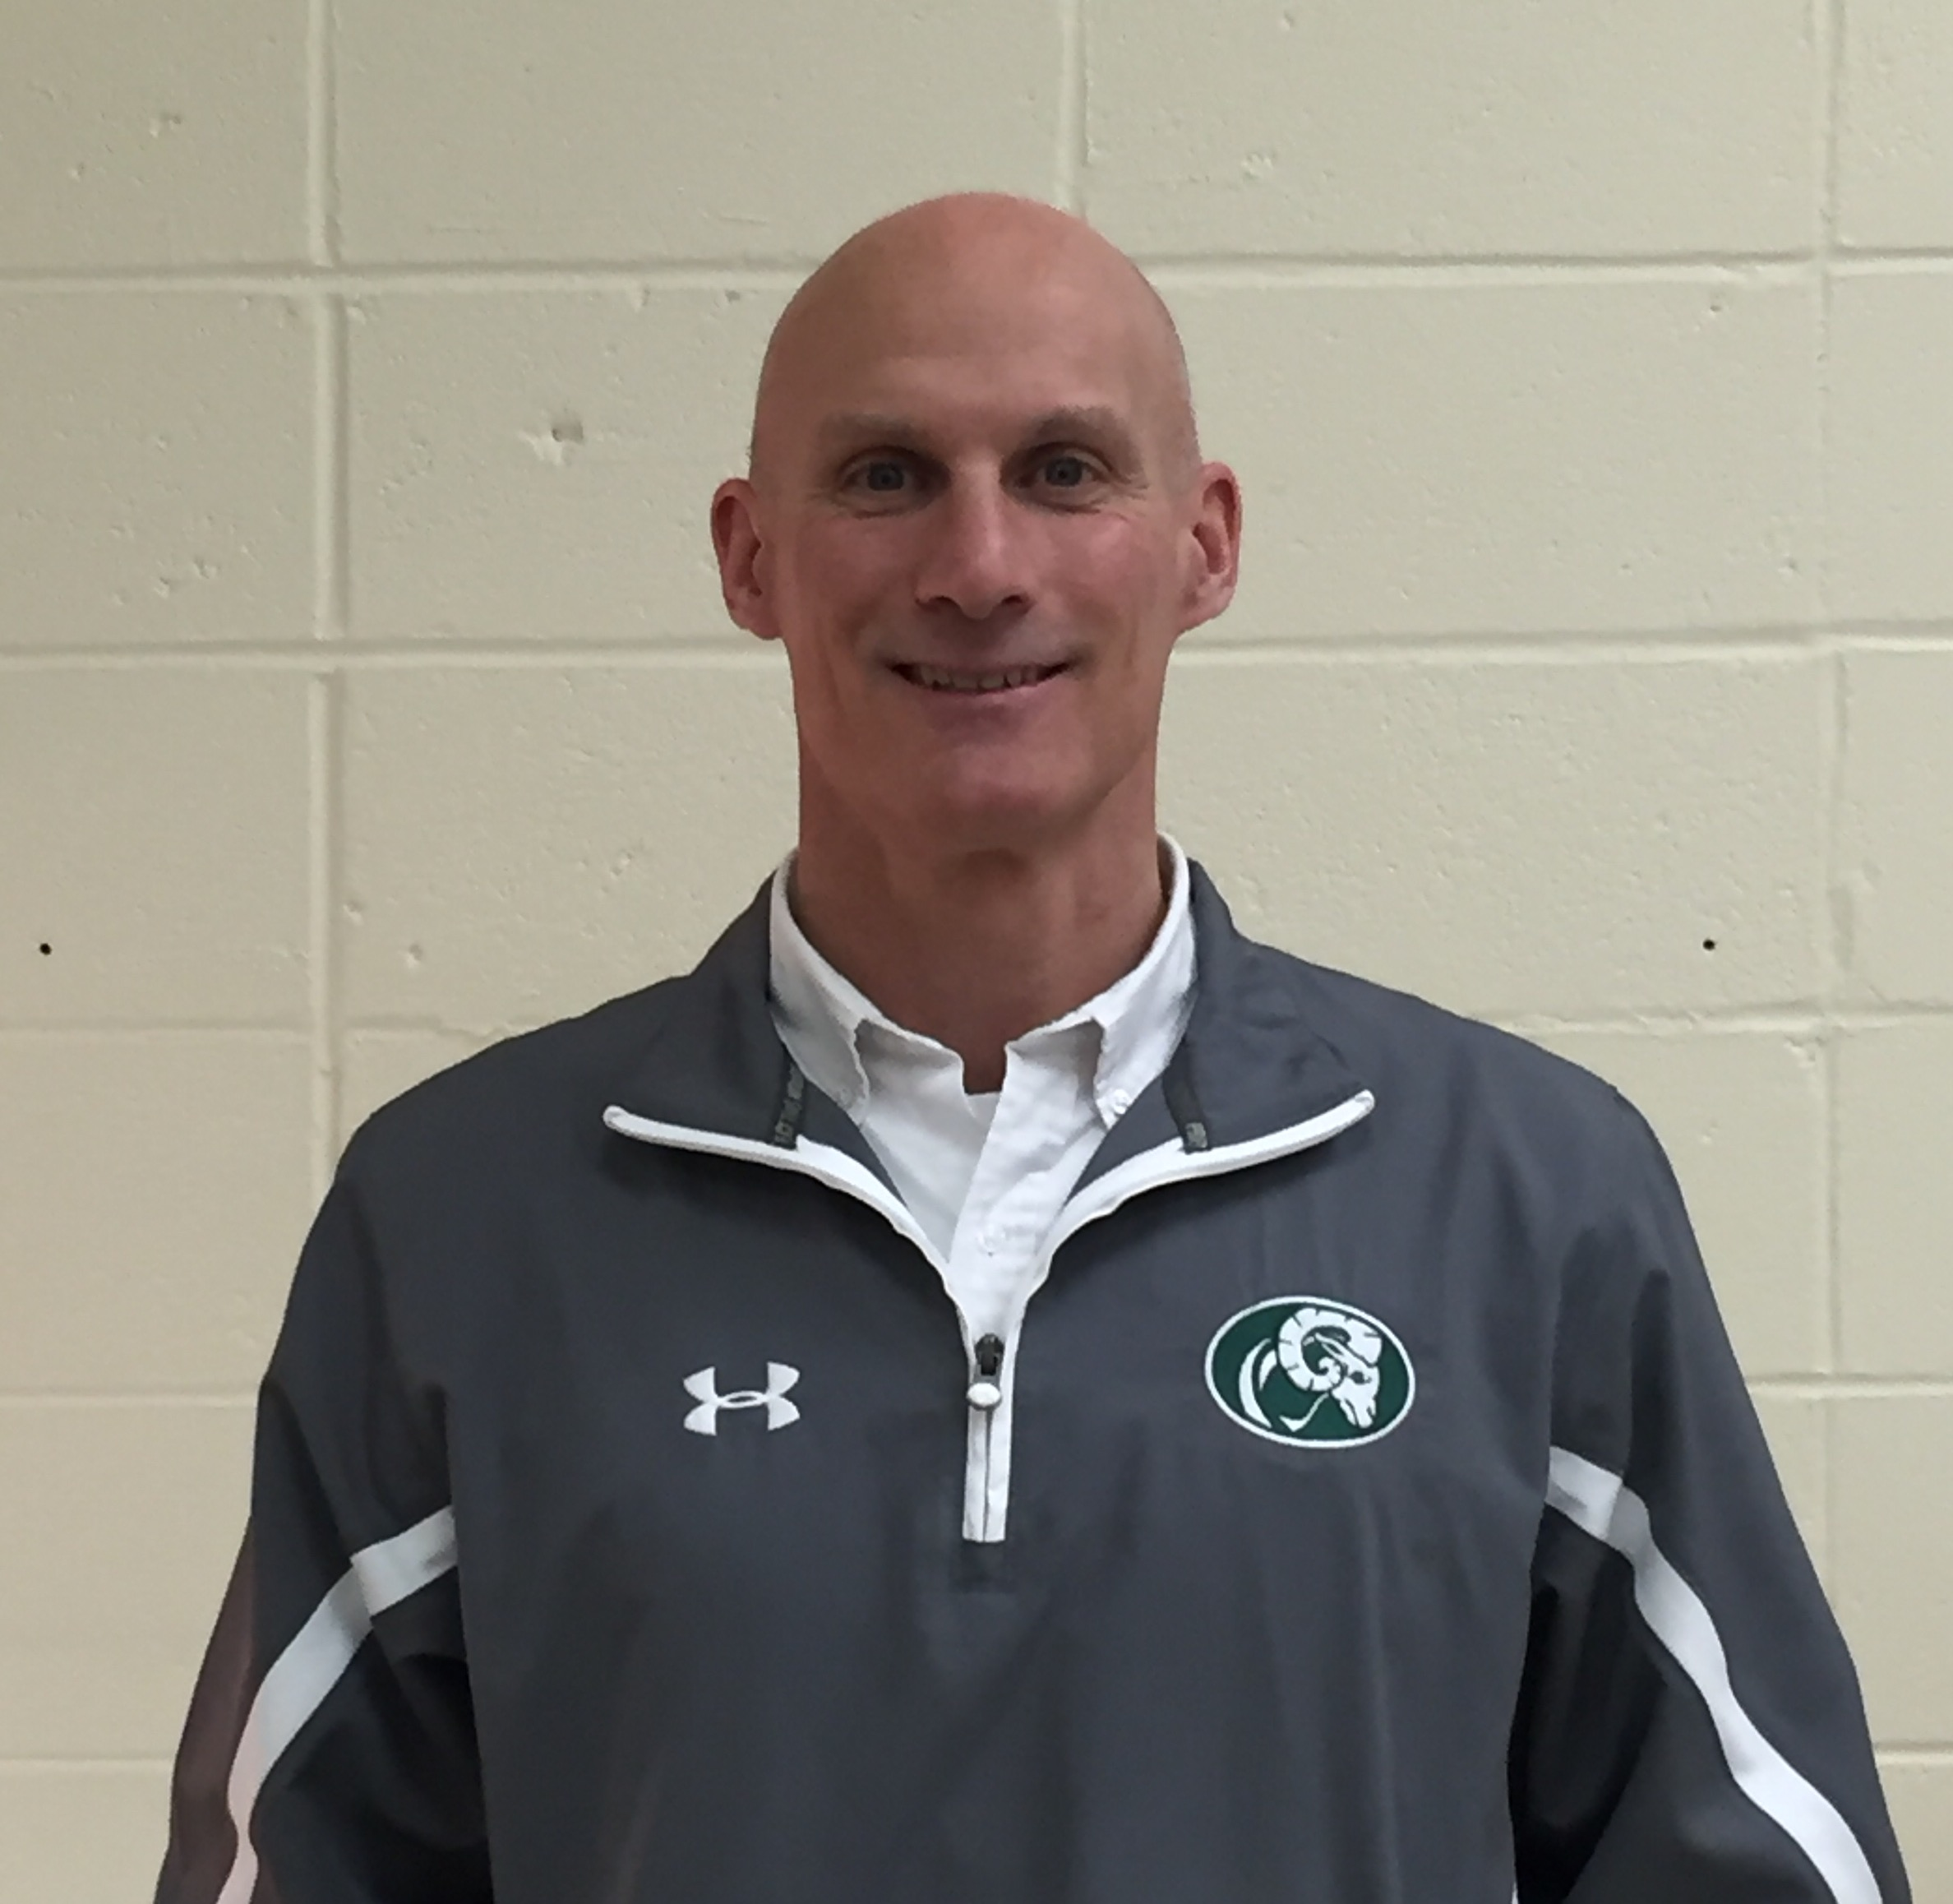 Interview of the Week – Parkside Wrestling Head Coach Burt Cashman